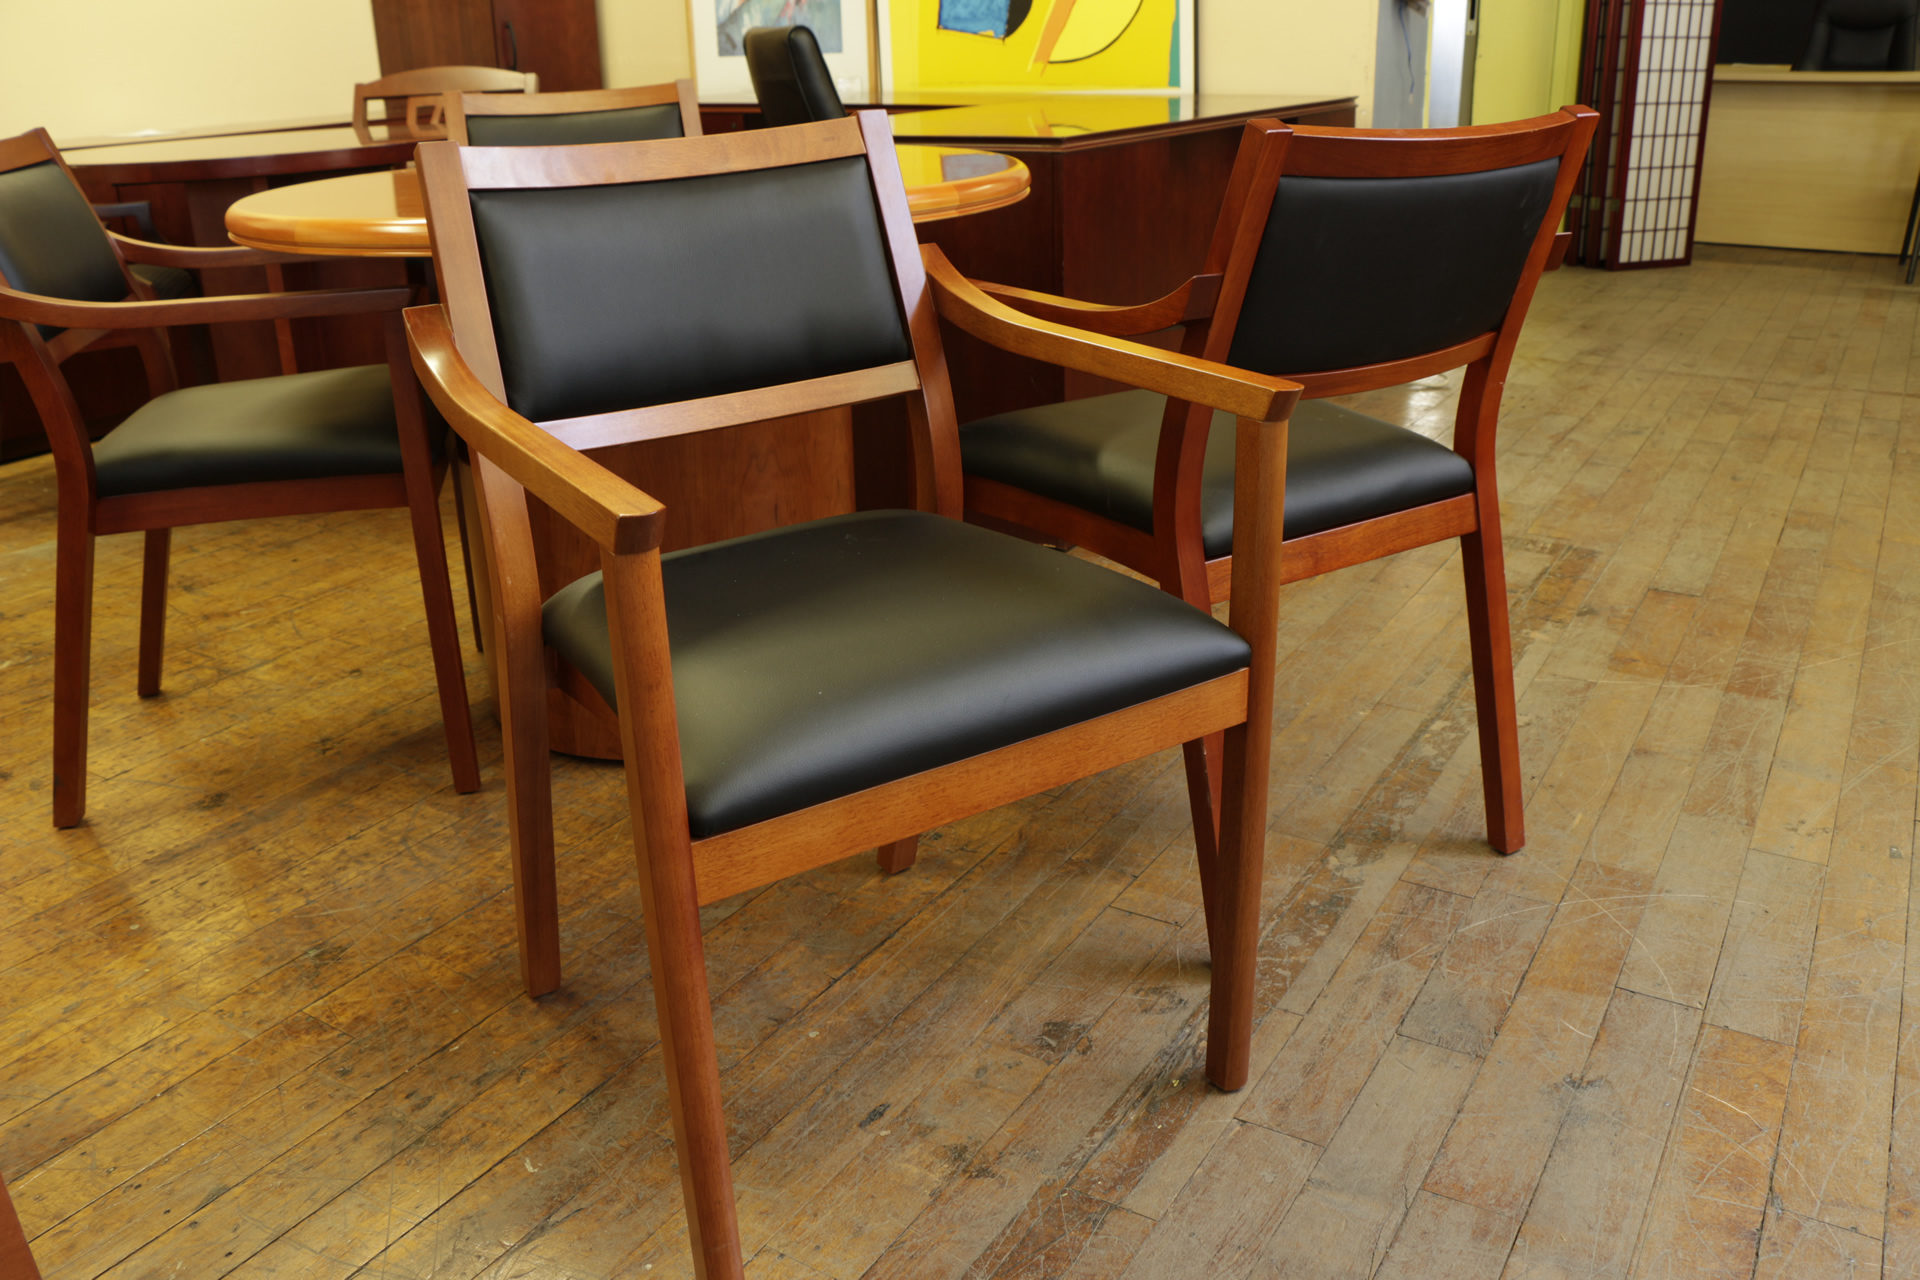 Cherry Frame SIde Chairs with Black Leatherette Seat